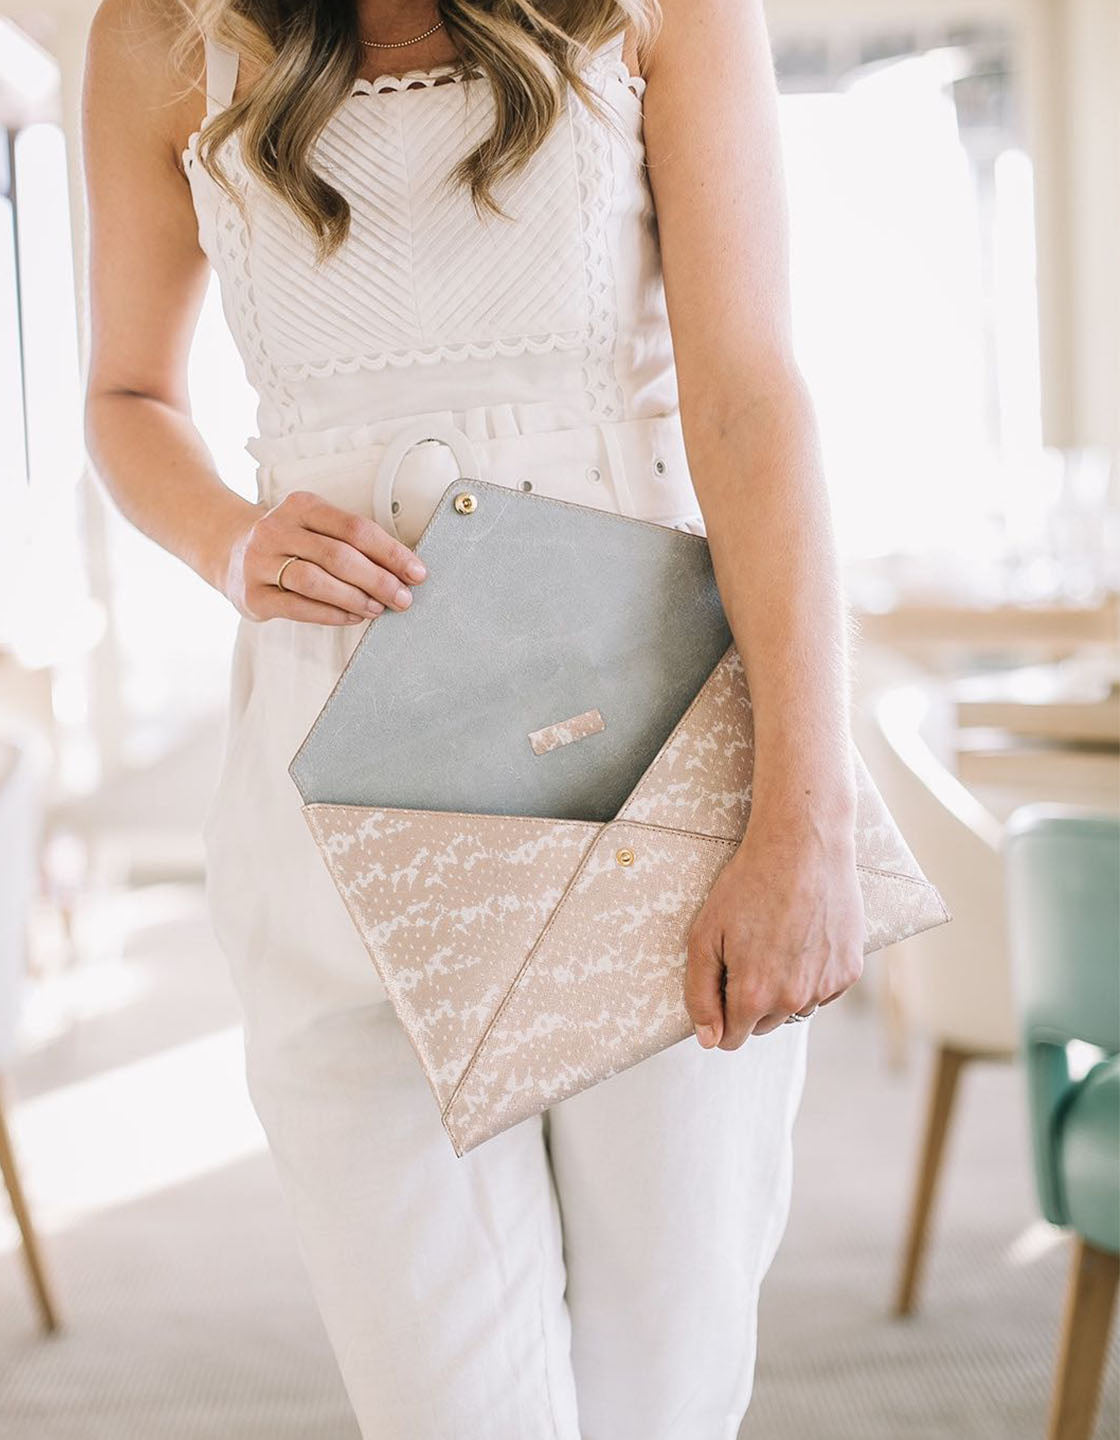 Medium All The Things Envelope in Blush Saffie